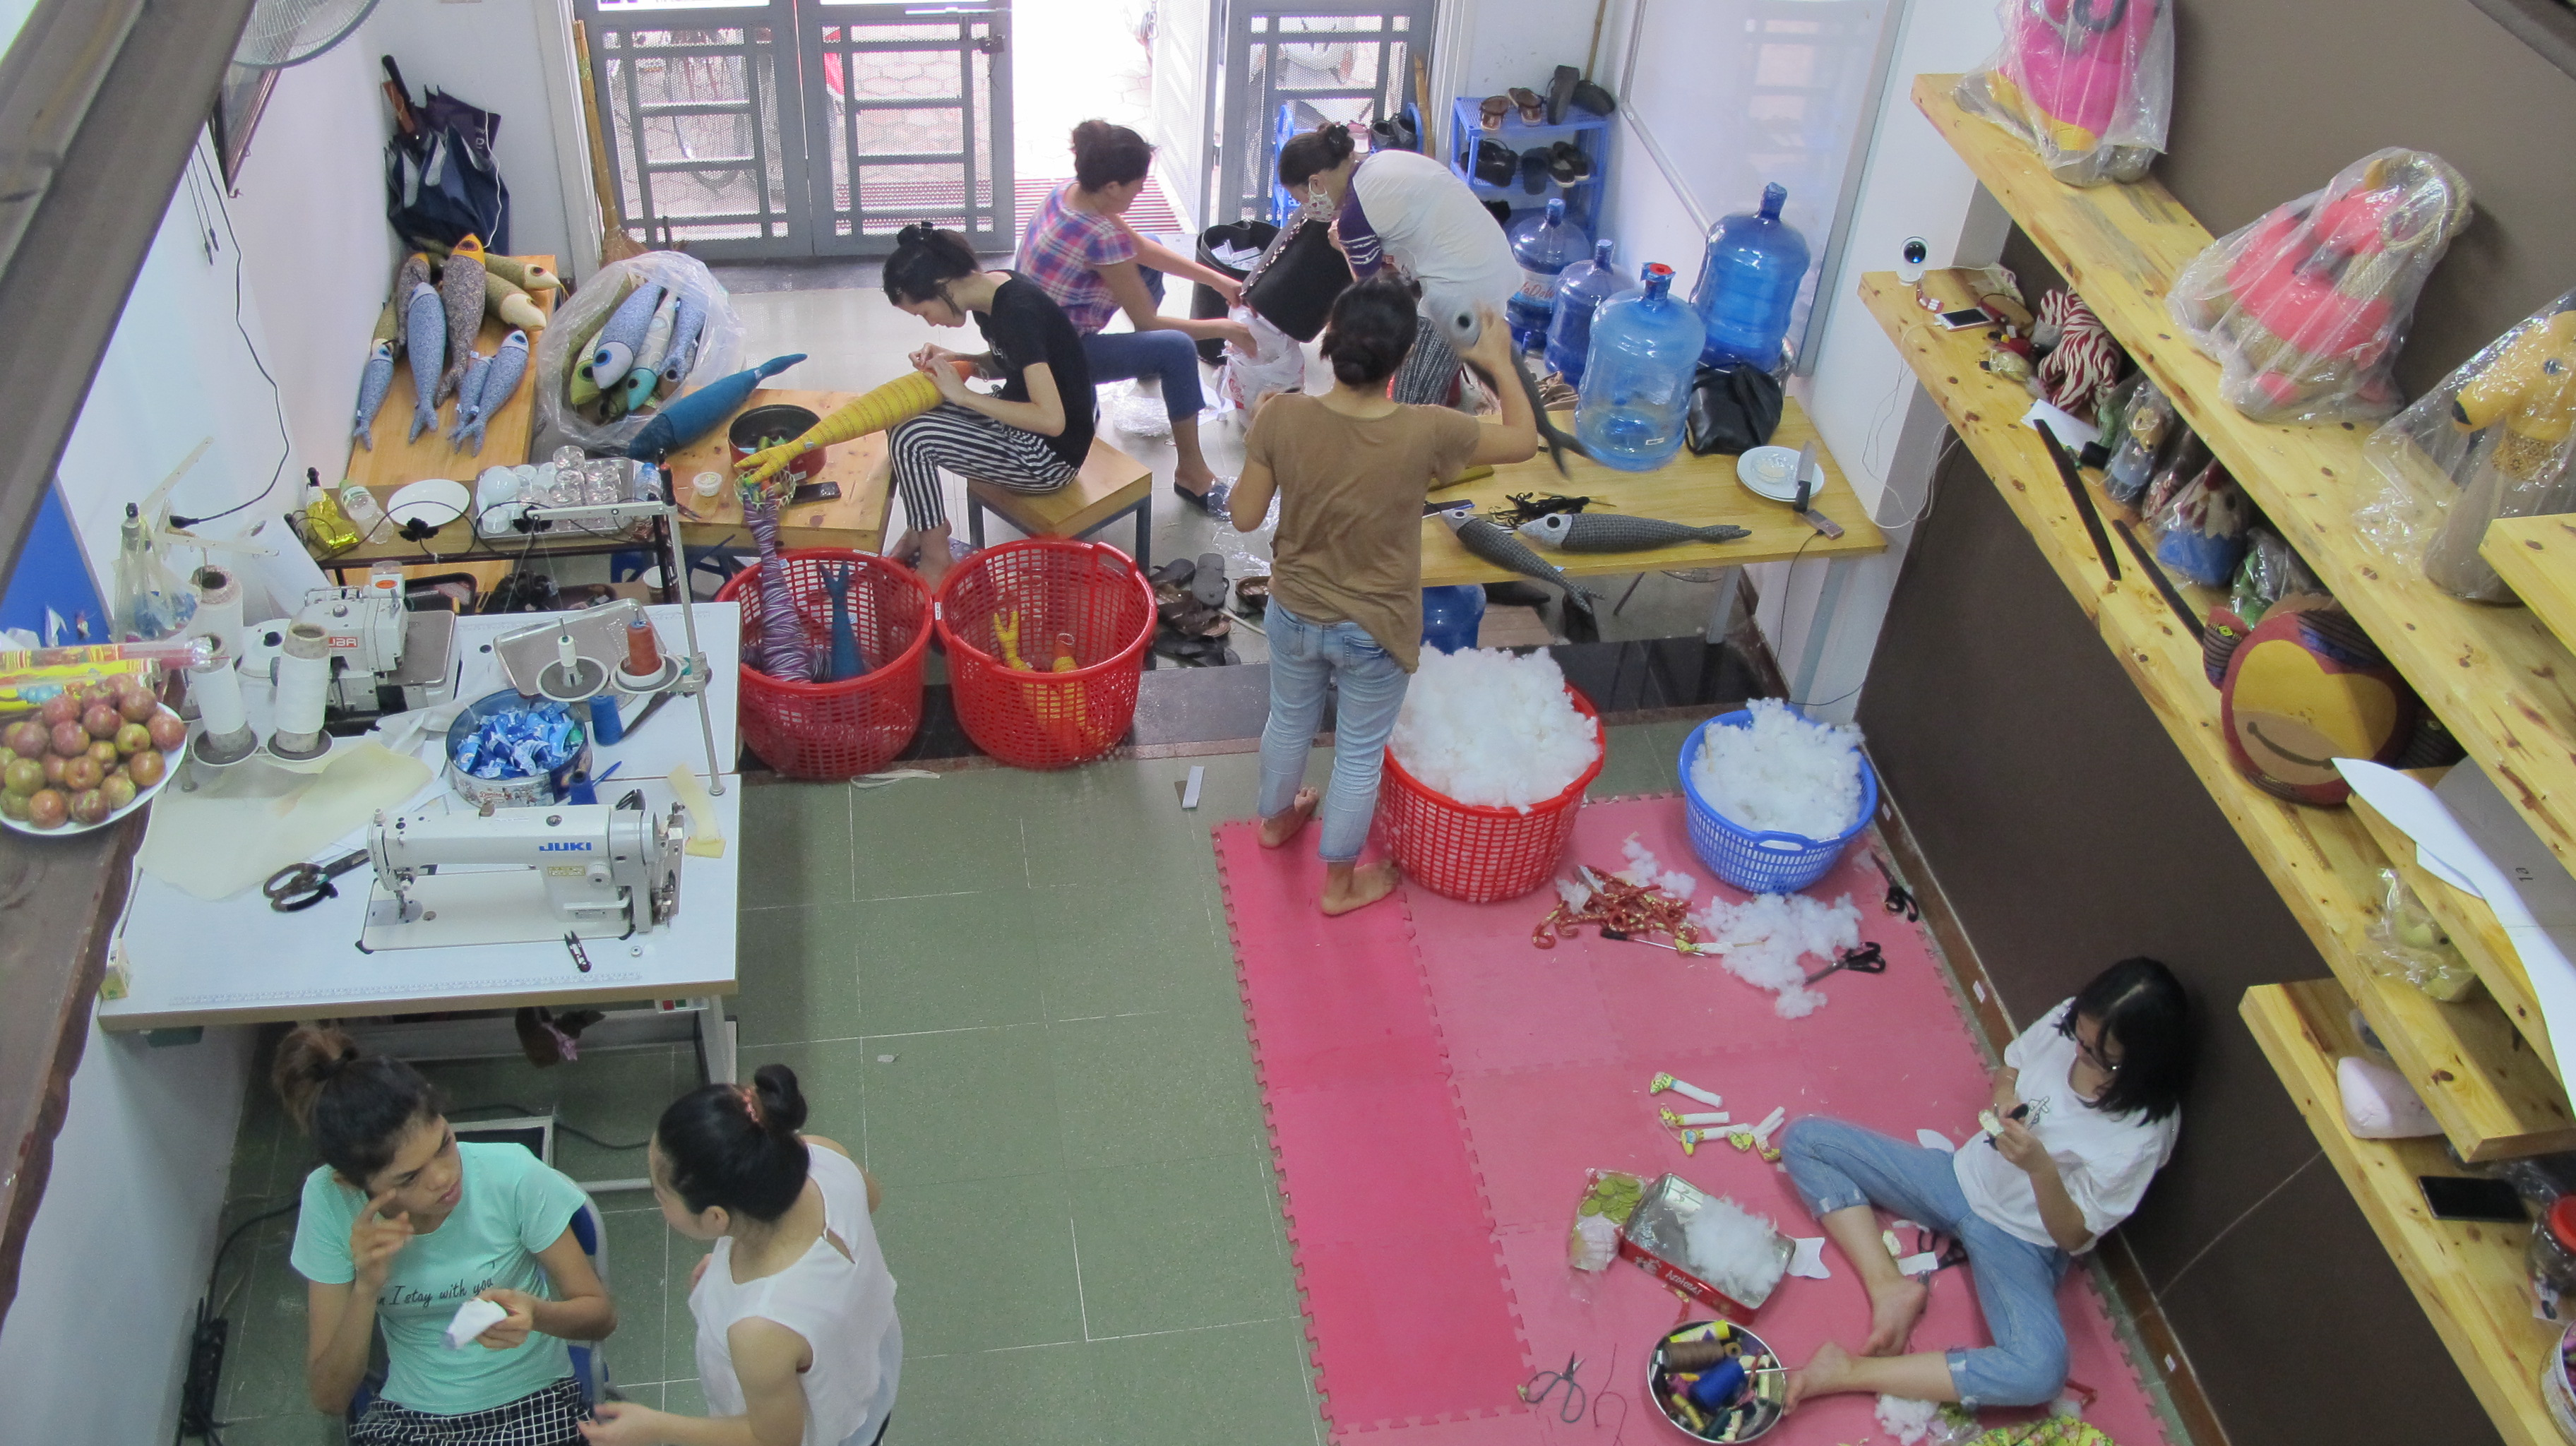 Kym Viet Company- a craft business for the disabled